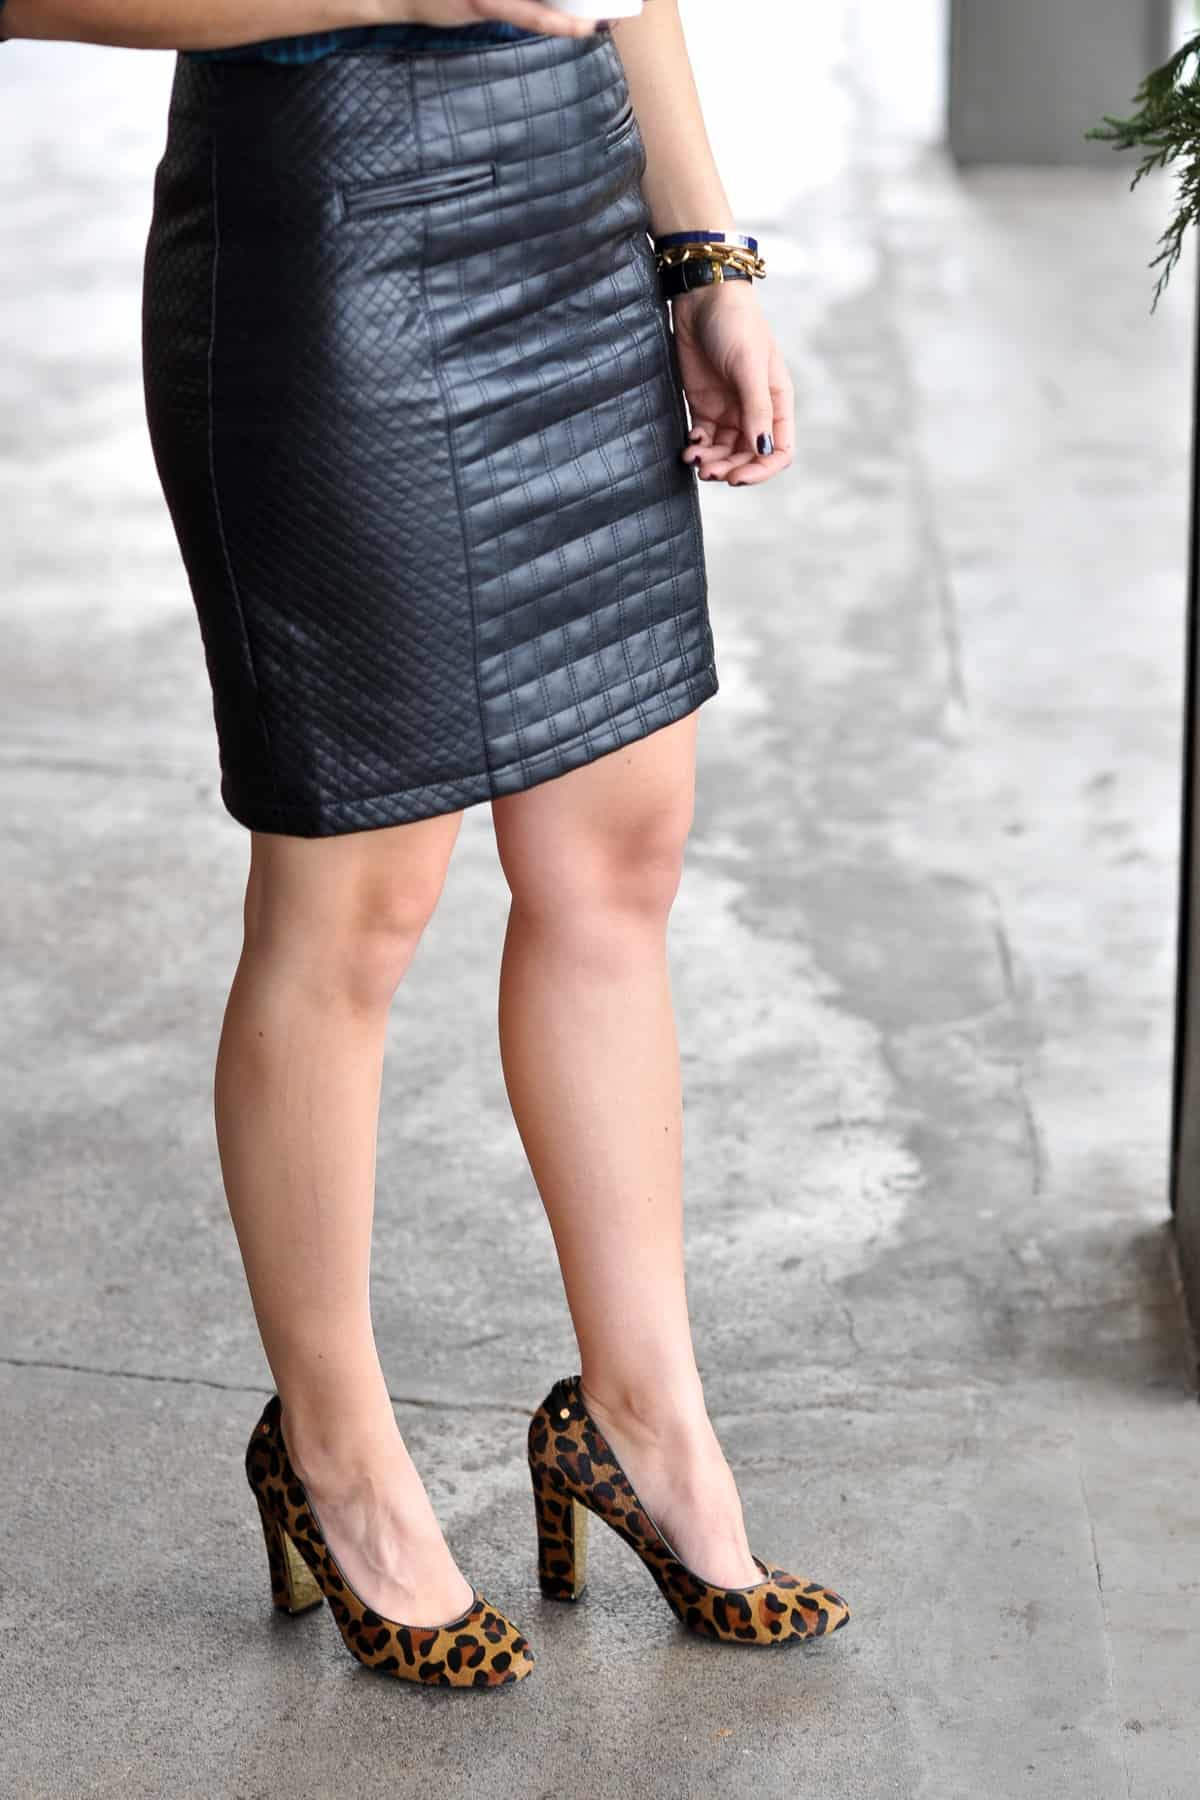 plaid and leopard outfit ideas, plaid shirt and leather skirt - @mystylevita